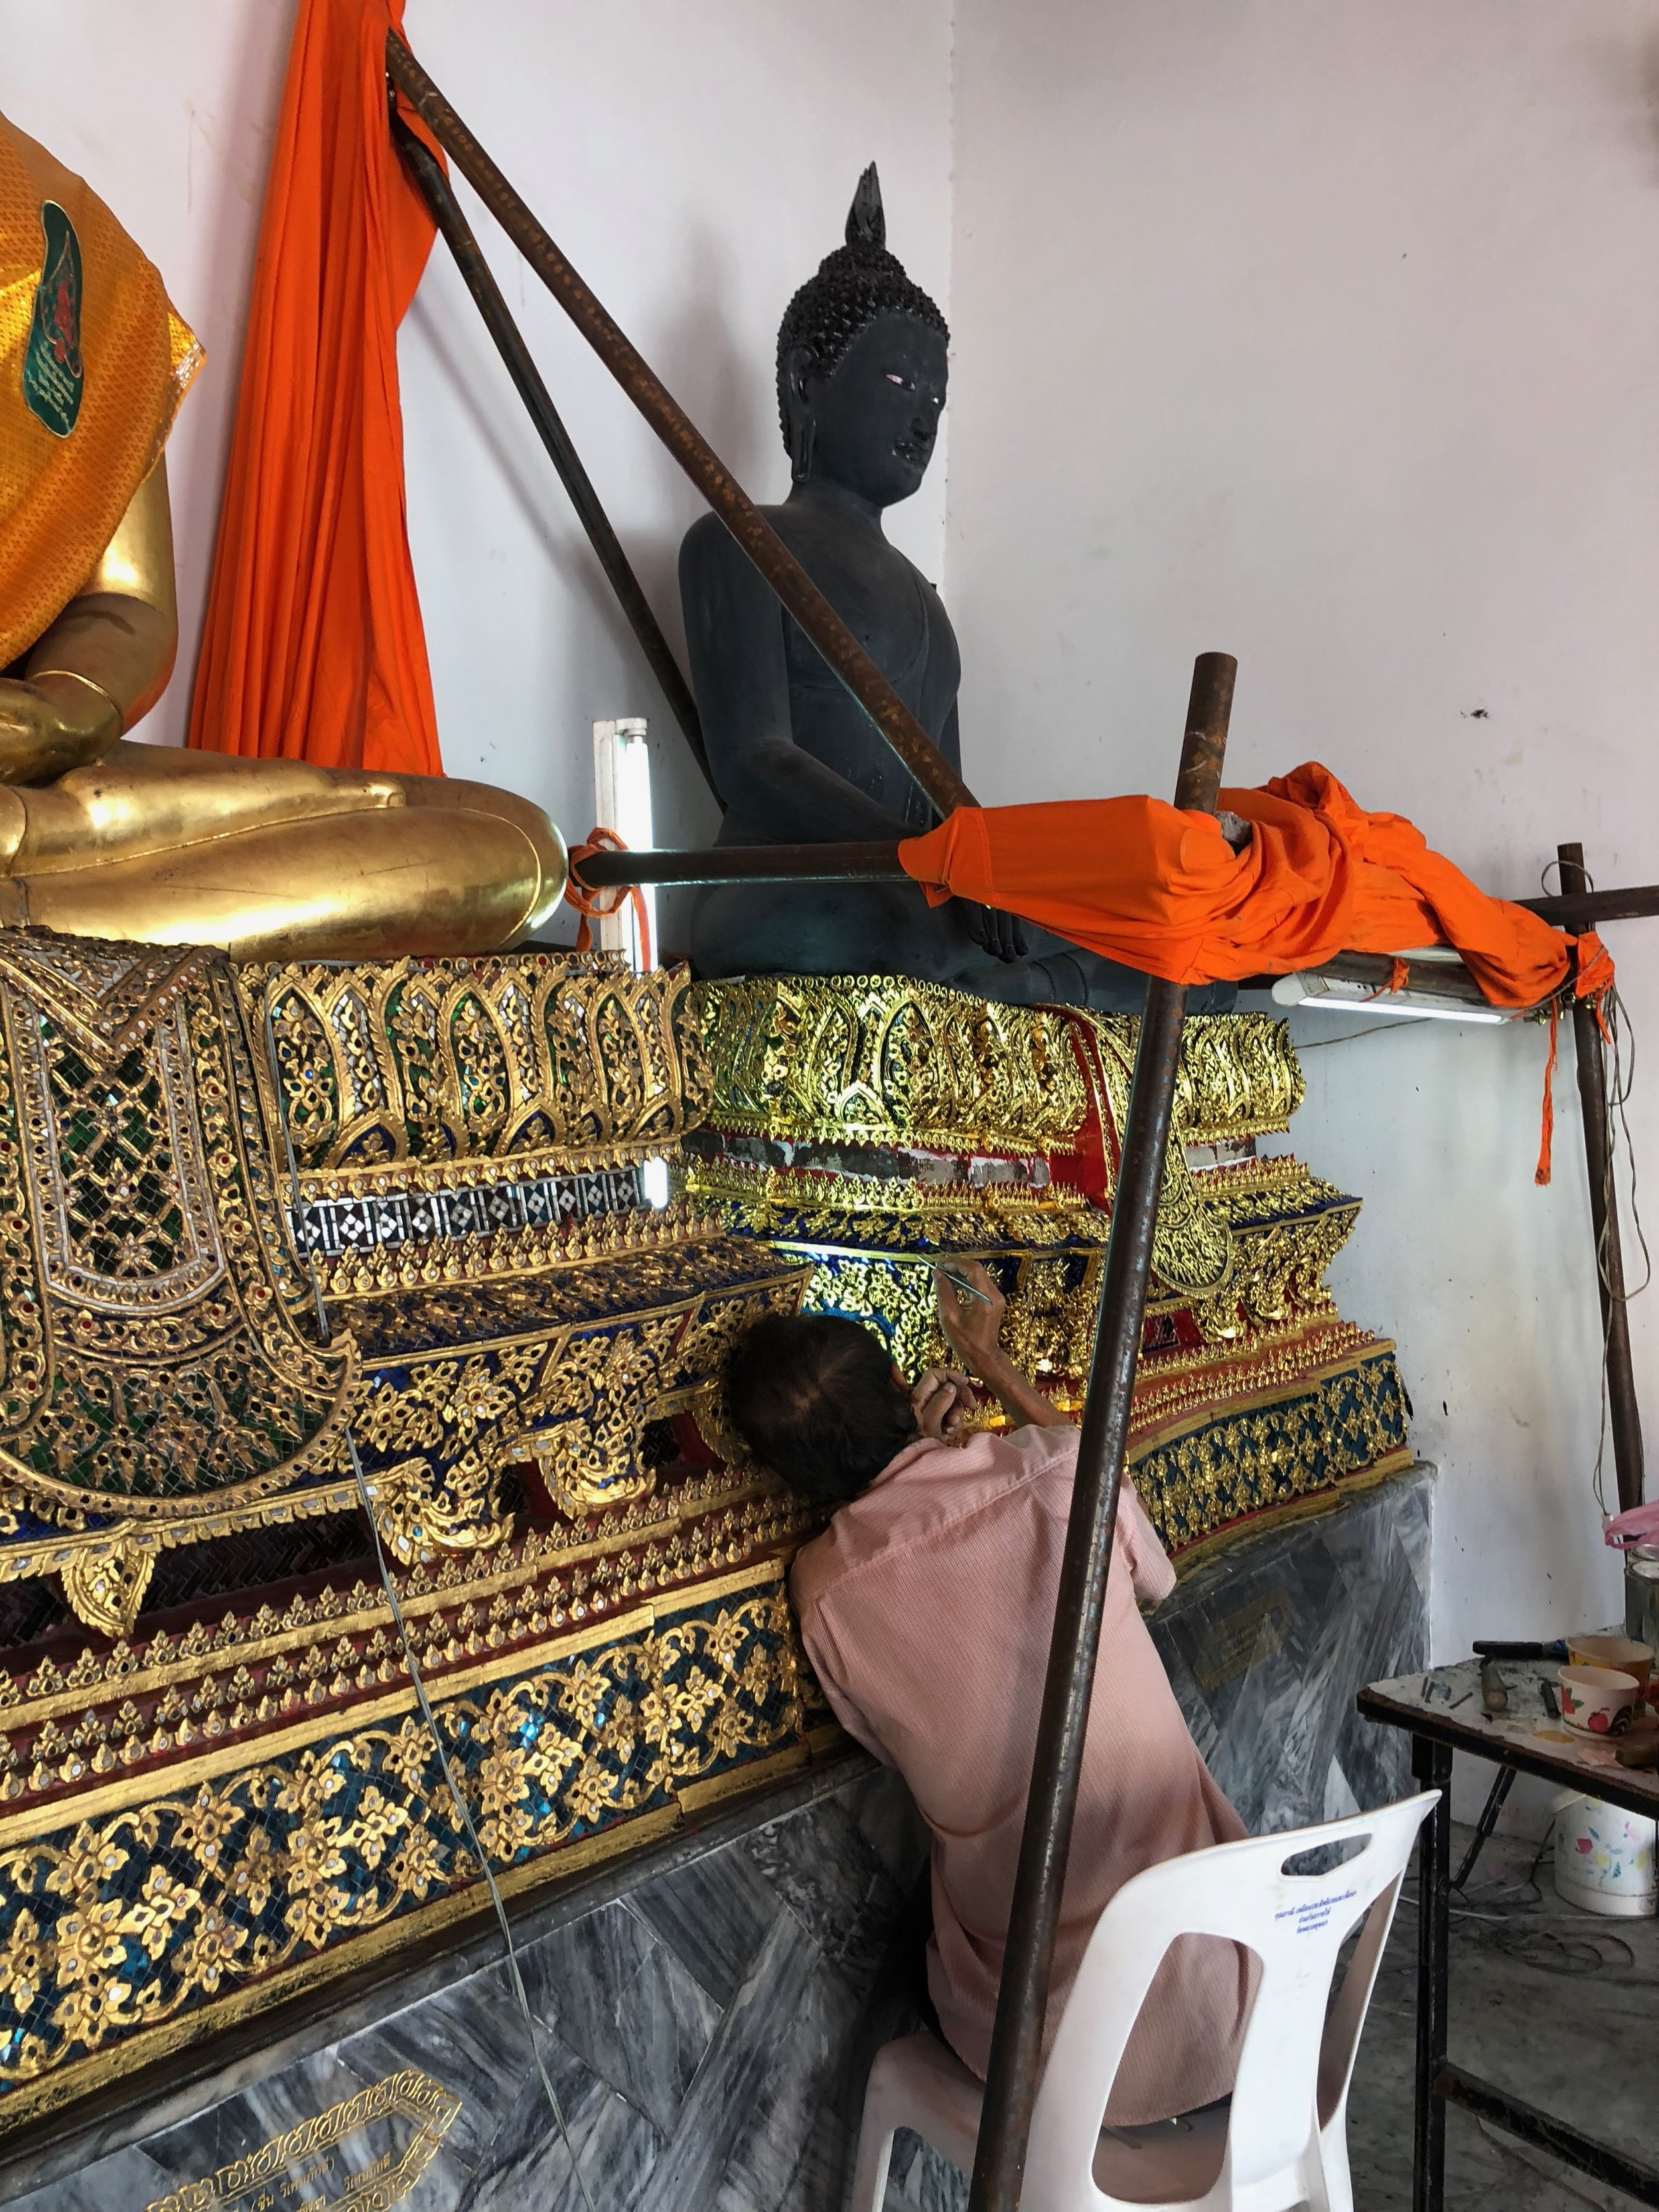 A photo I caught of someone working on the decoration of a statue in Wat Pho. I think he was adding jewels into the embellishments.